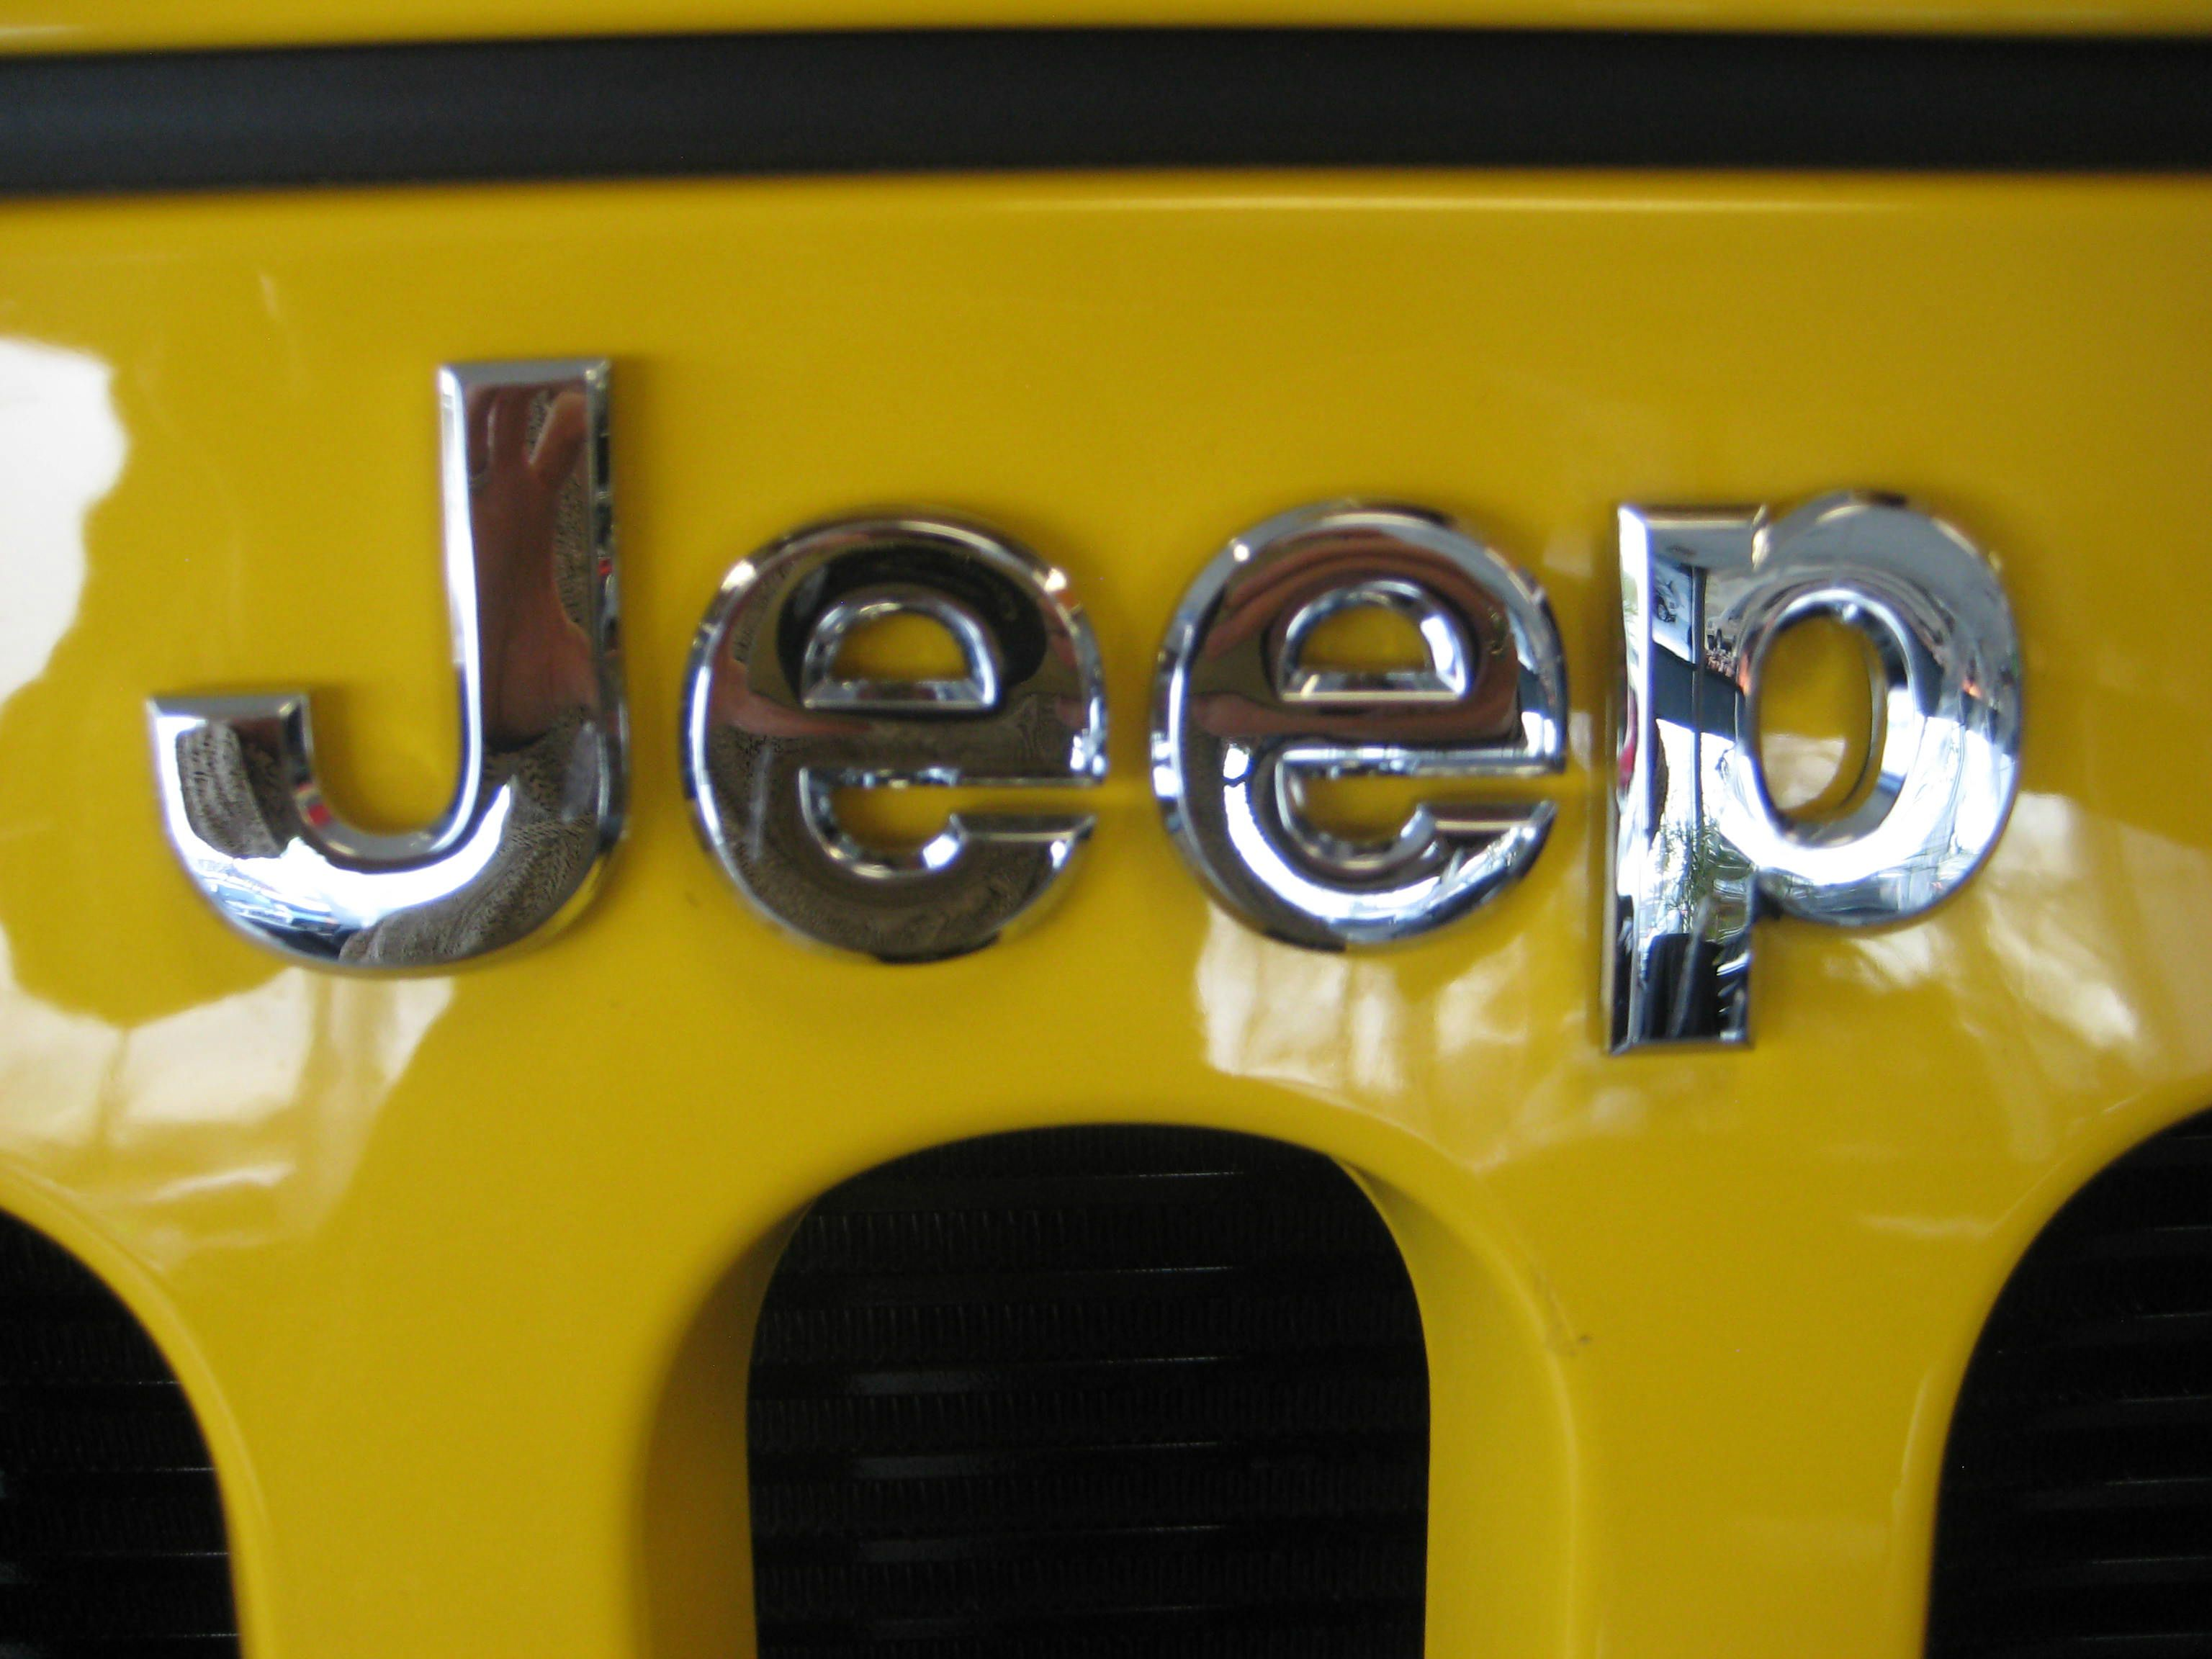 It S A Jeep Thing Click And Find Yours Jeep Suv Jeep Cars Yellow Jeep Wrangler